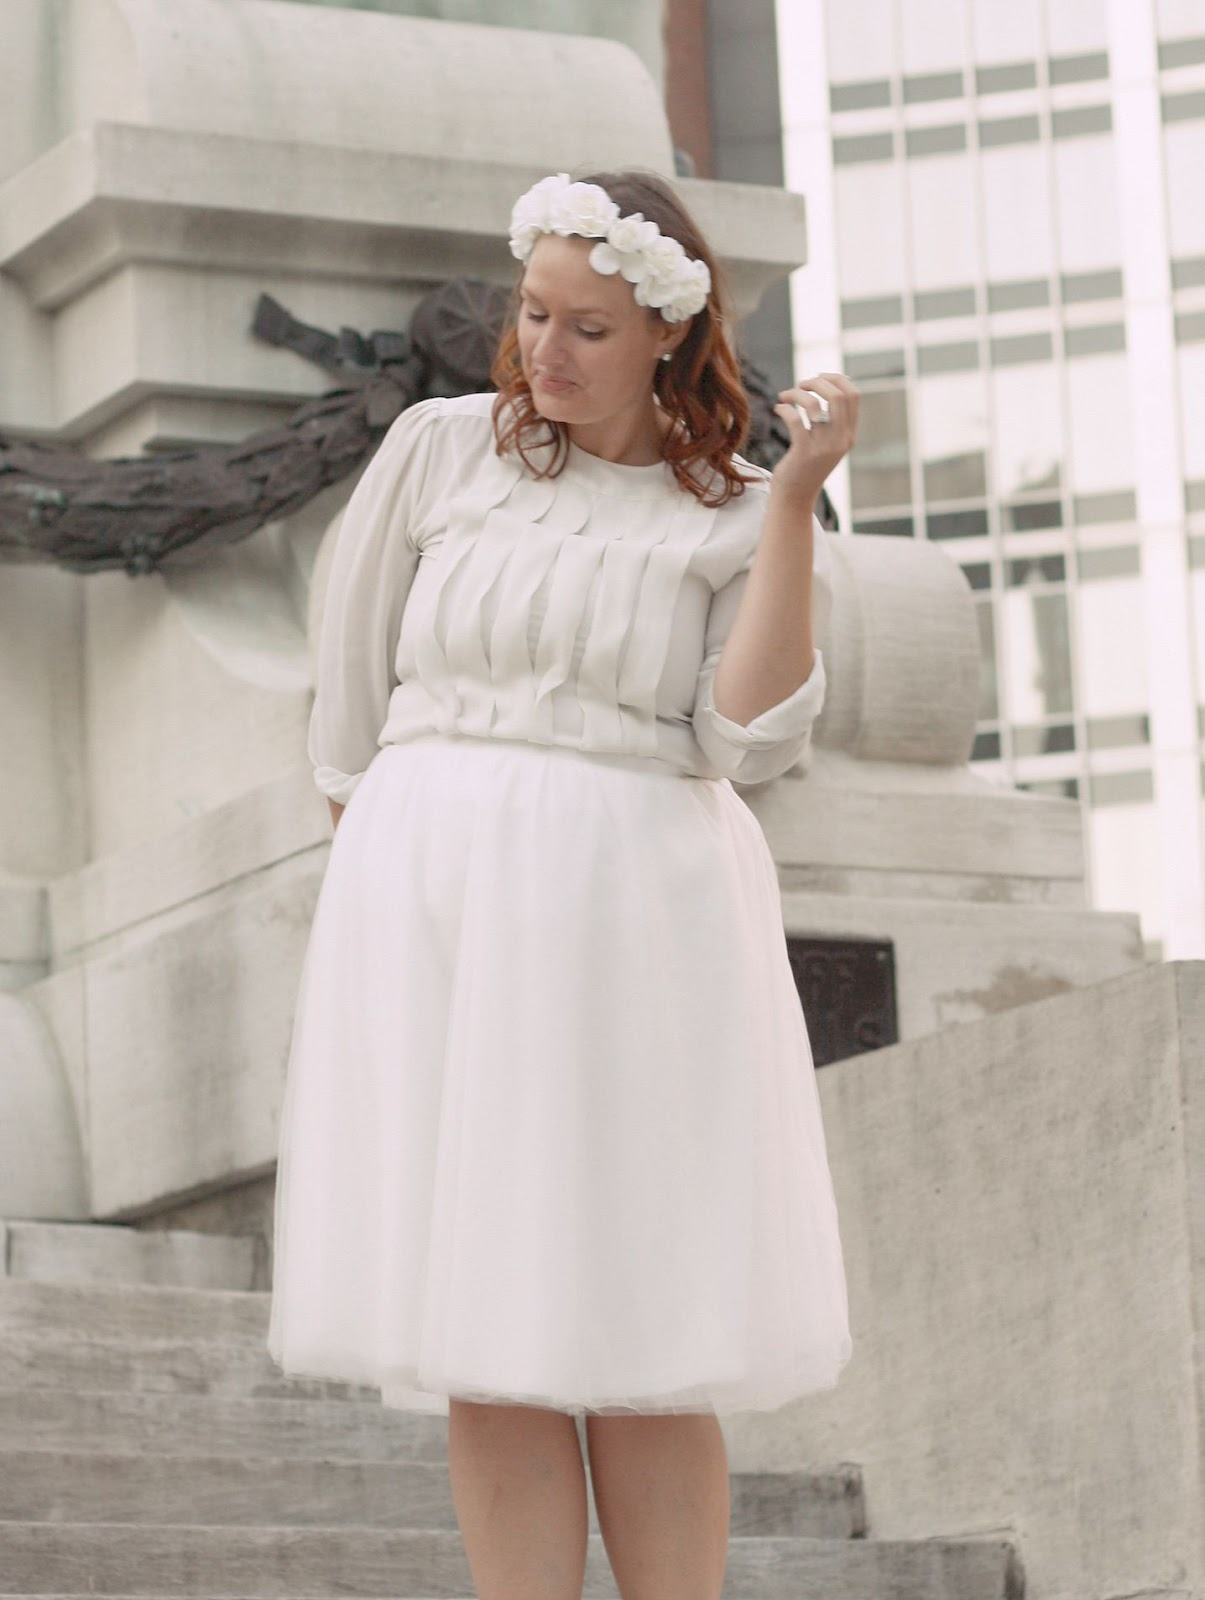 In kinseys closet flower girl i snagged it for cheap at charlotte russe the top is an old vintage find ive had for years topped off with a white flower crown headband i was good izmirmasajfo Images